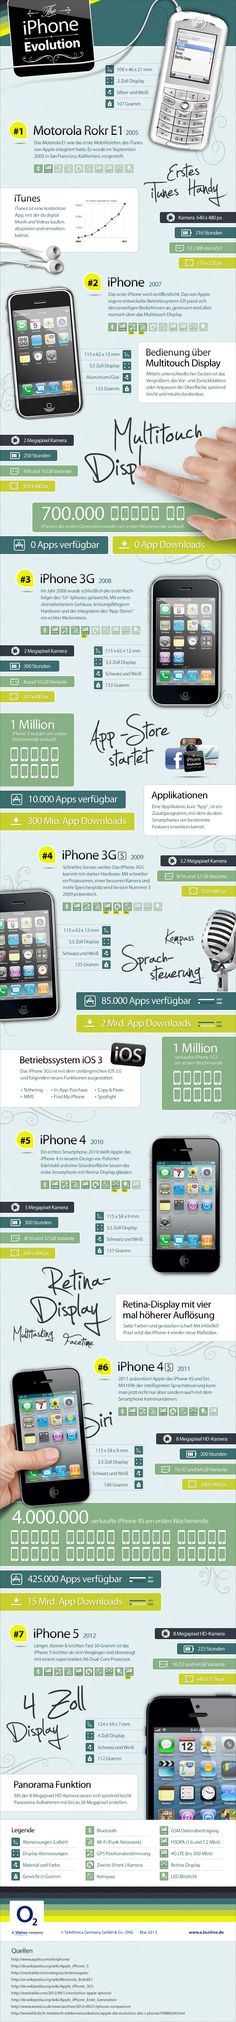 The infographic displays the evolution of Apples iphone, giving interesting statistics and informationen about every exemplar. Mobile Marketing, Pure Data, Evolution, Interesting Statistics, Cell Phones For Seniors, Retina Display, Computer, Iphone, Web Design